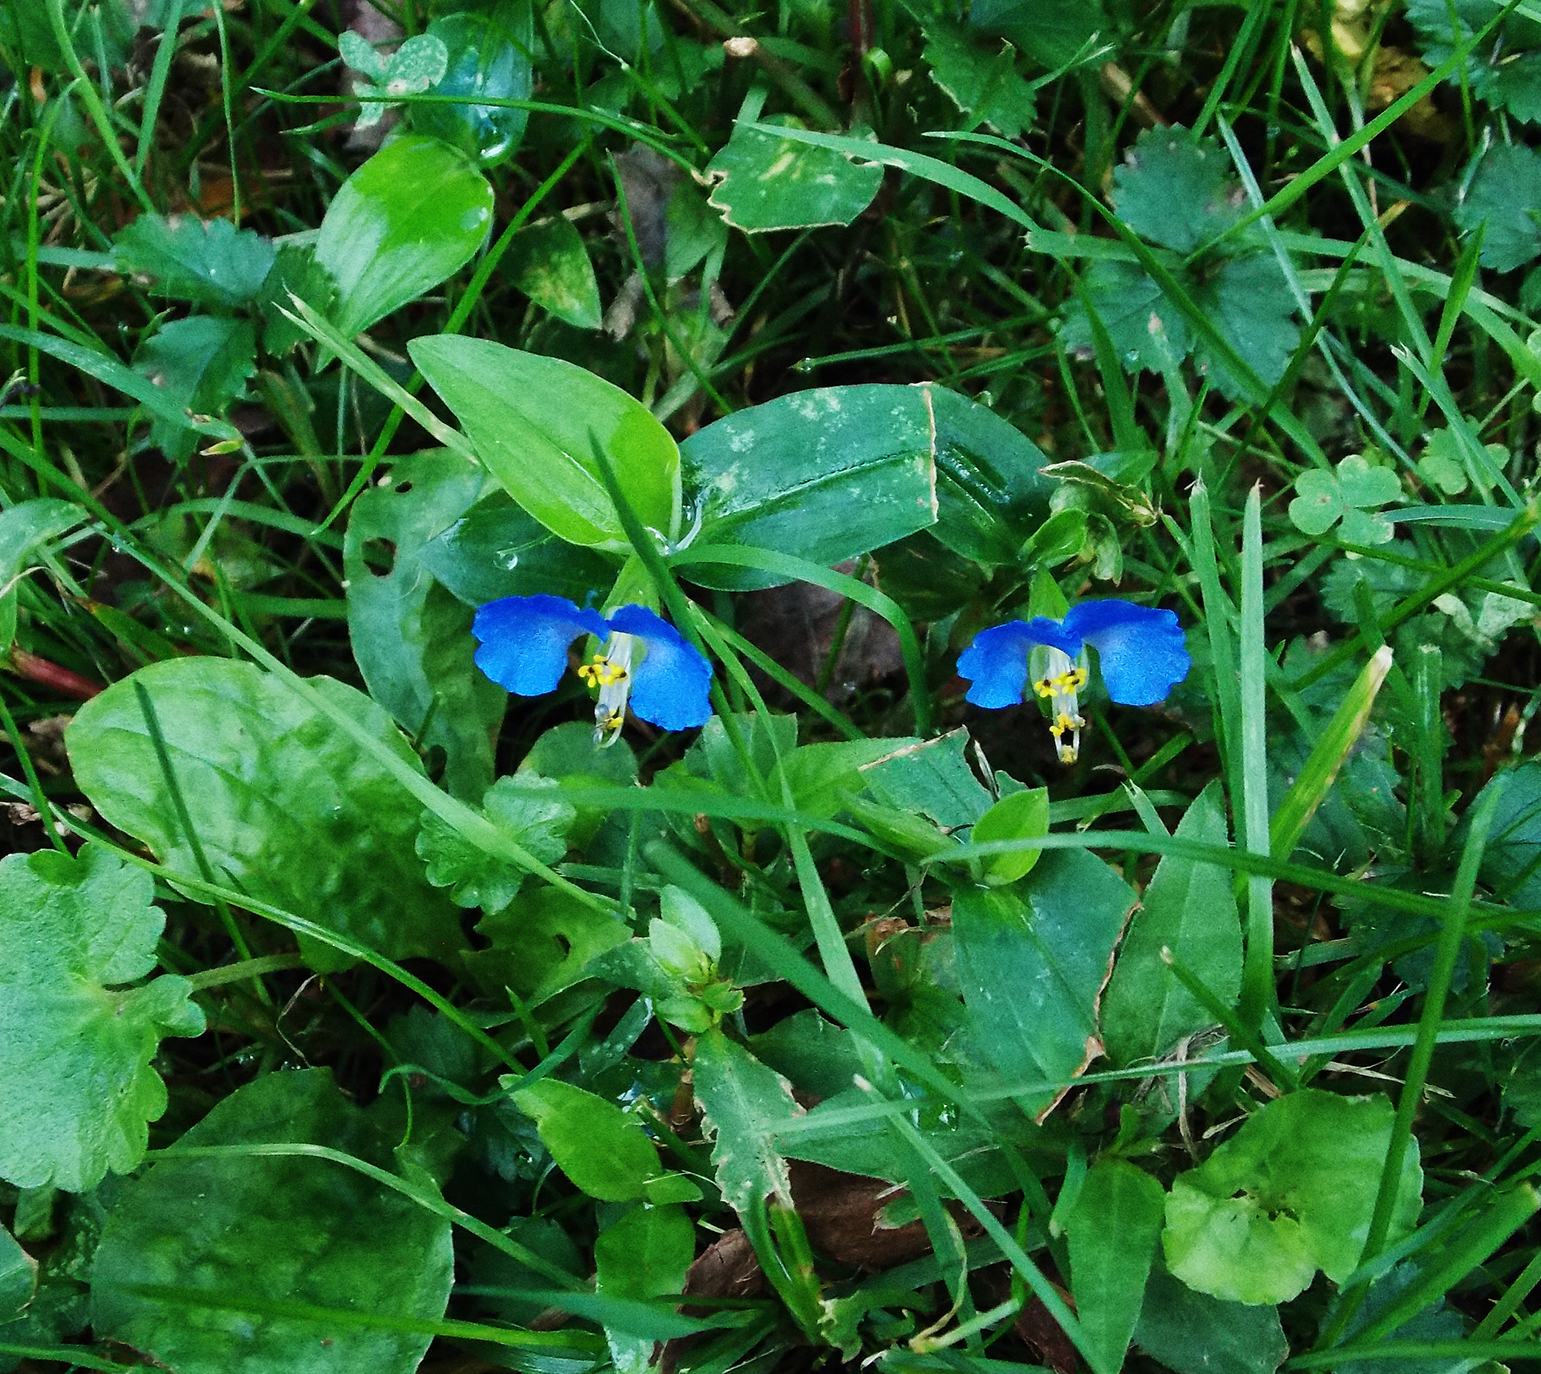 blue flowers in the grass